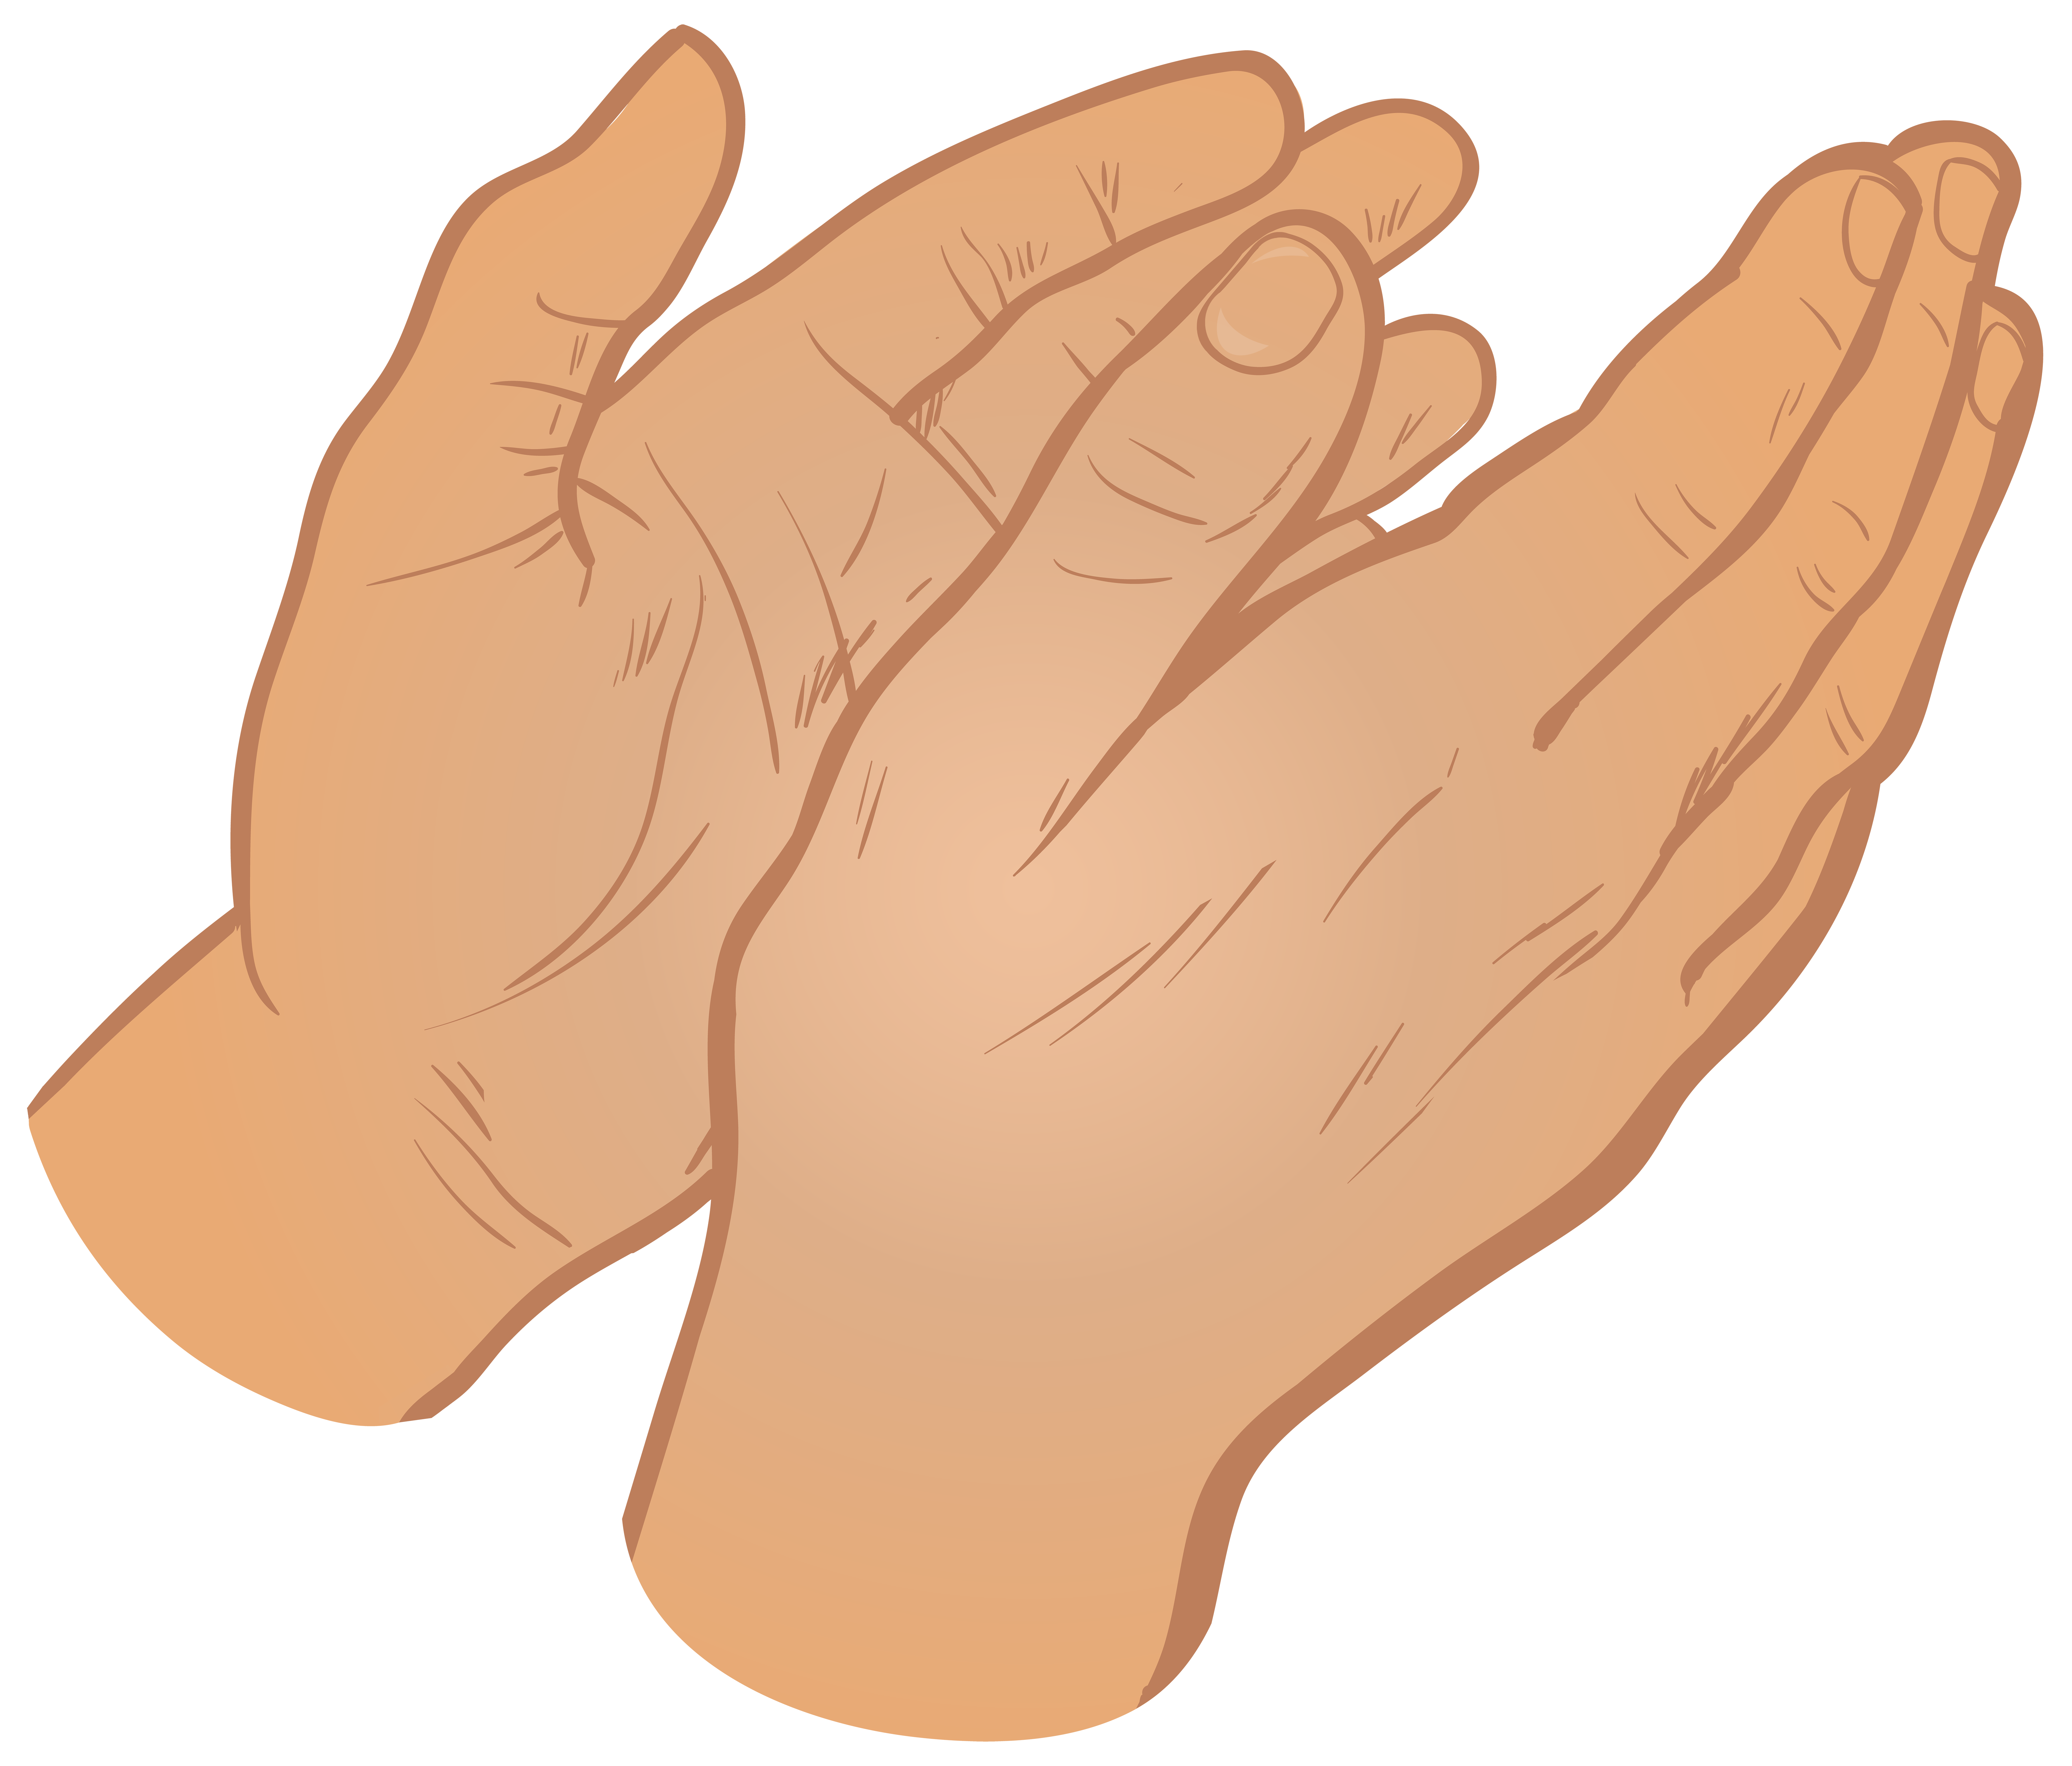 Clapping Hands PNG Clip Art Image.